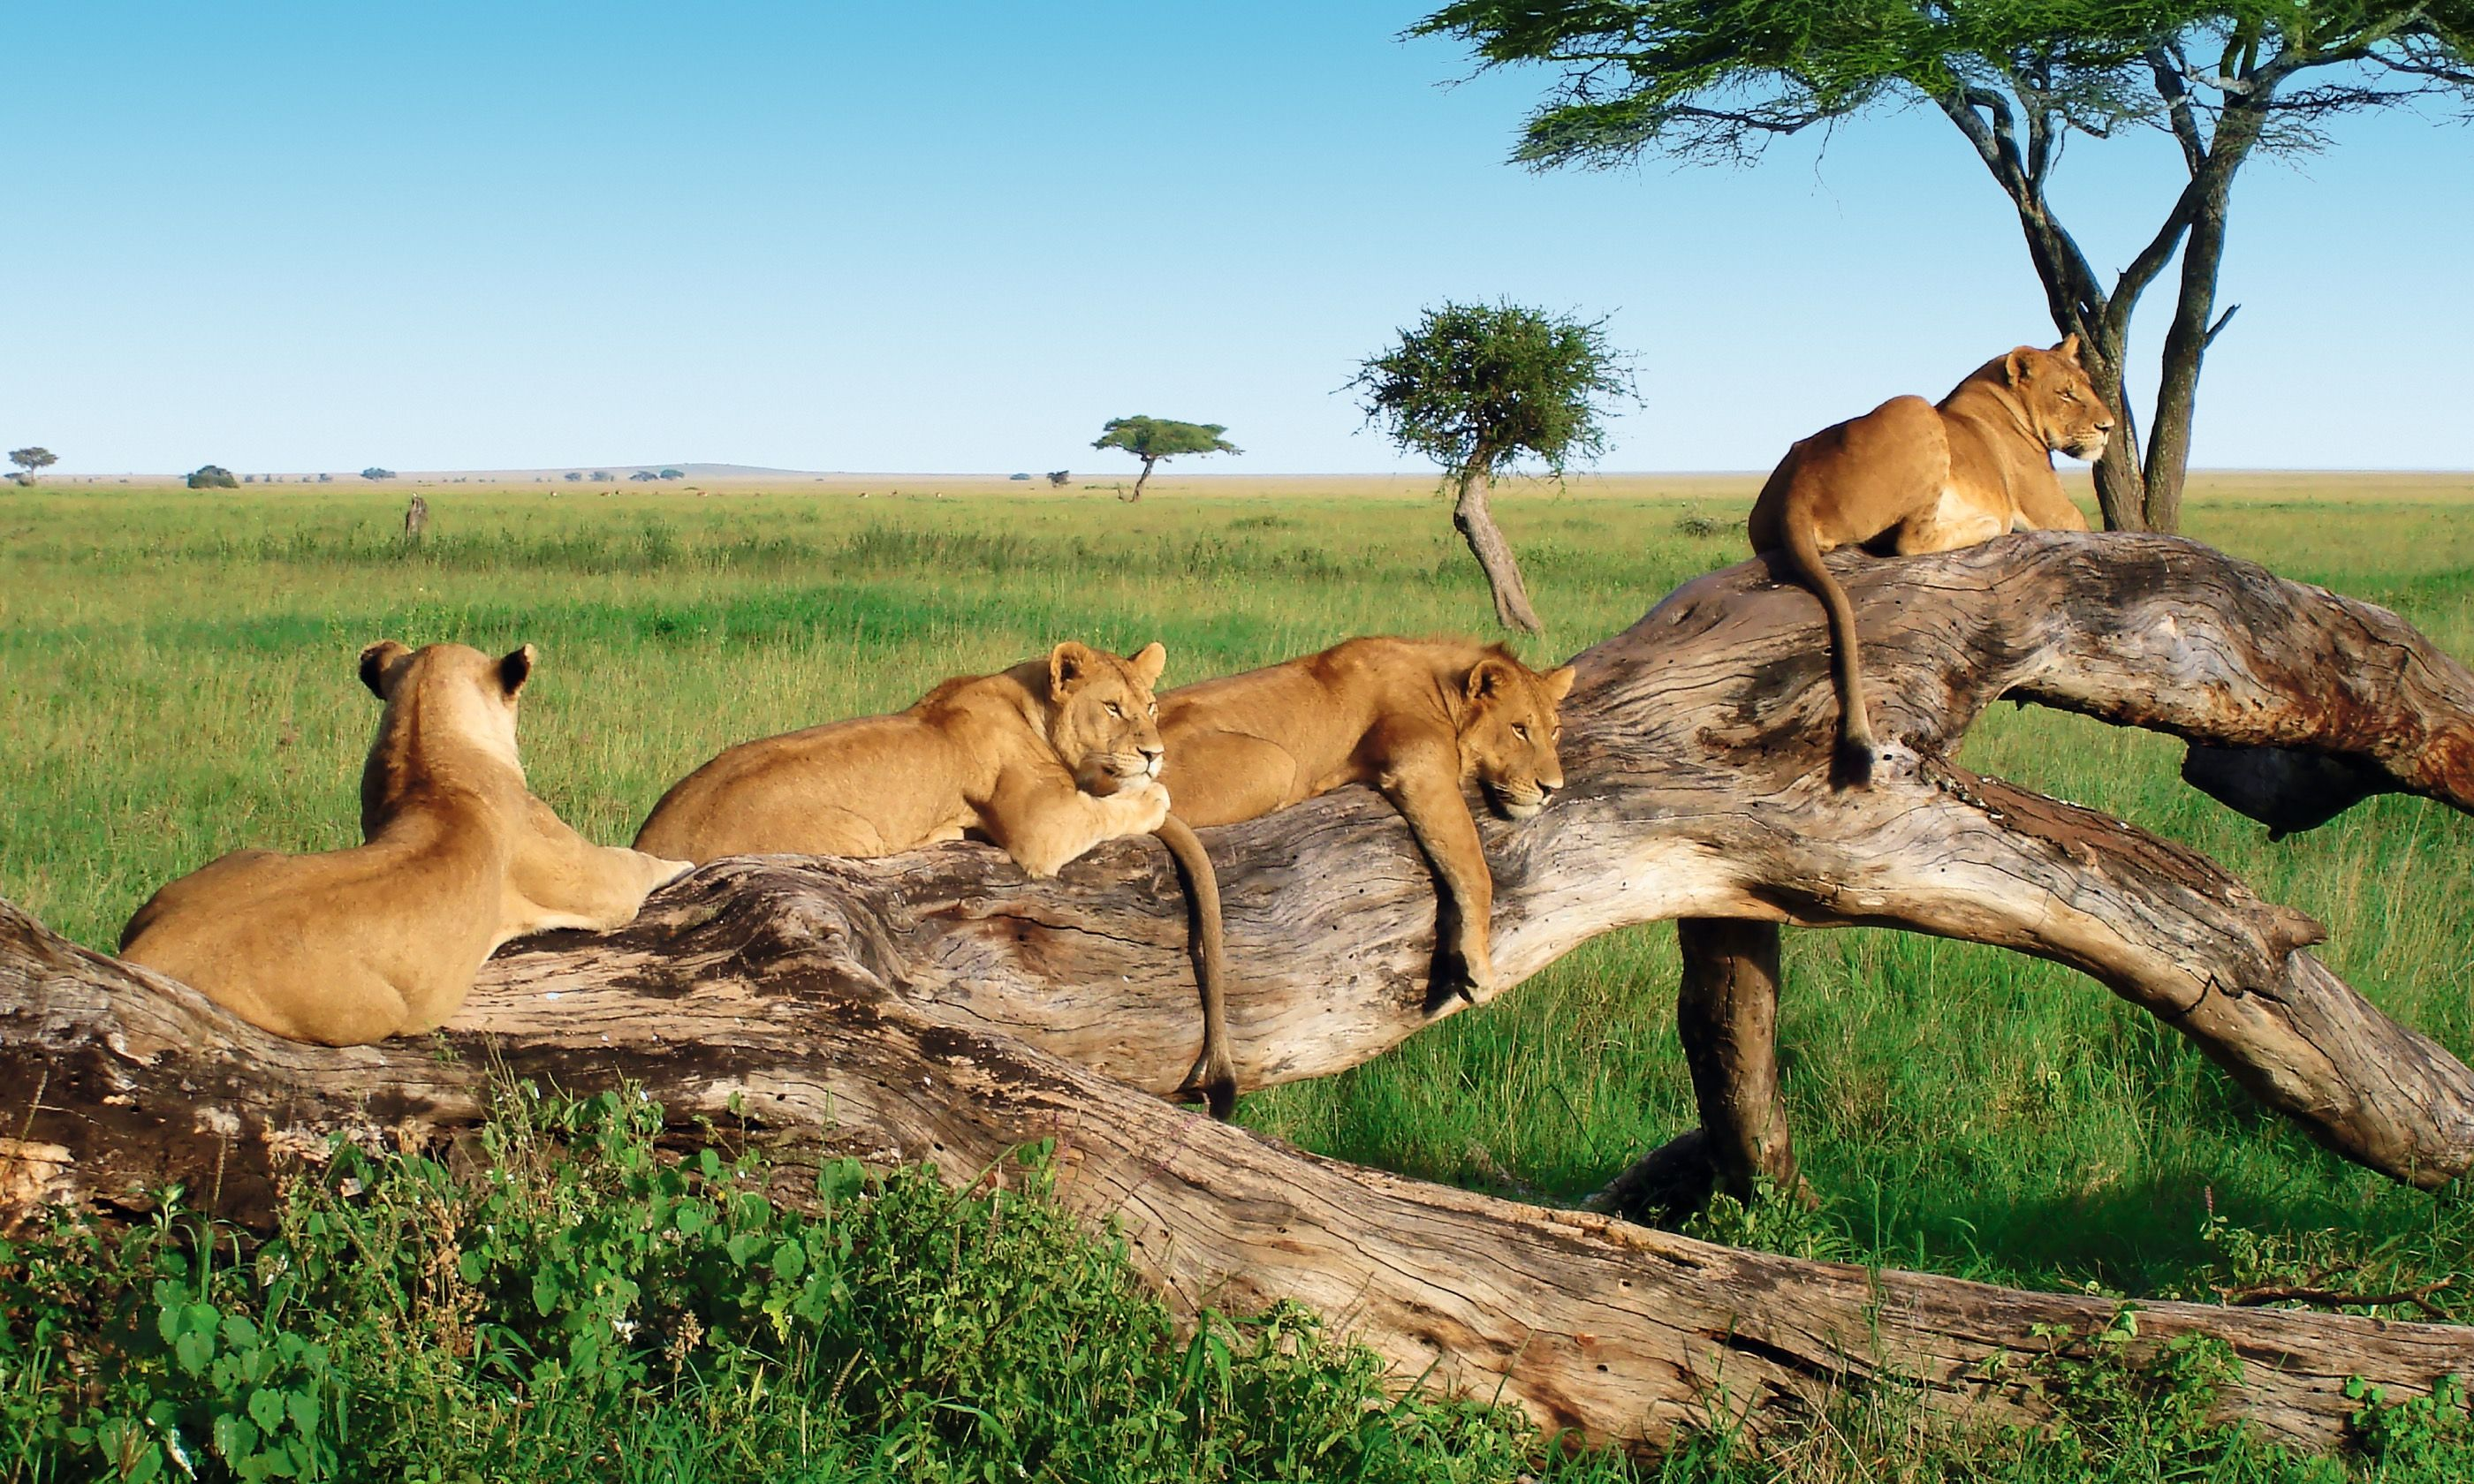 Lions lounging in the Serengeti (Mountain Kingdoms)